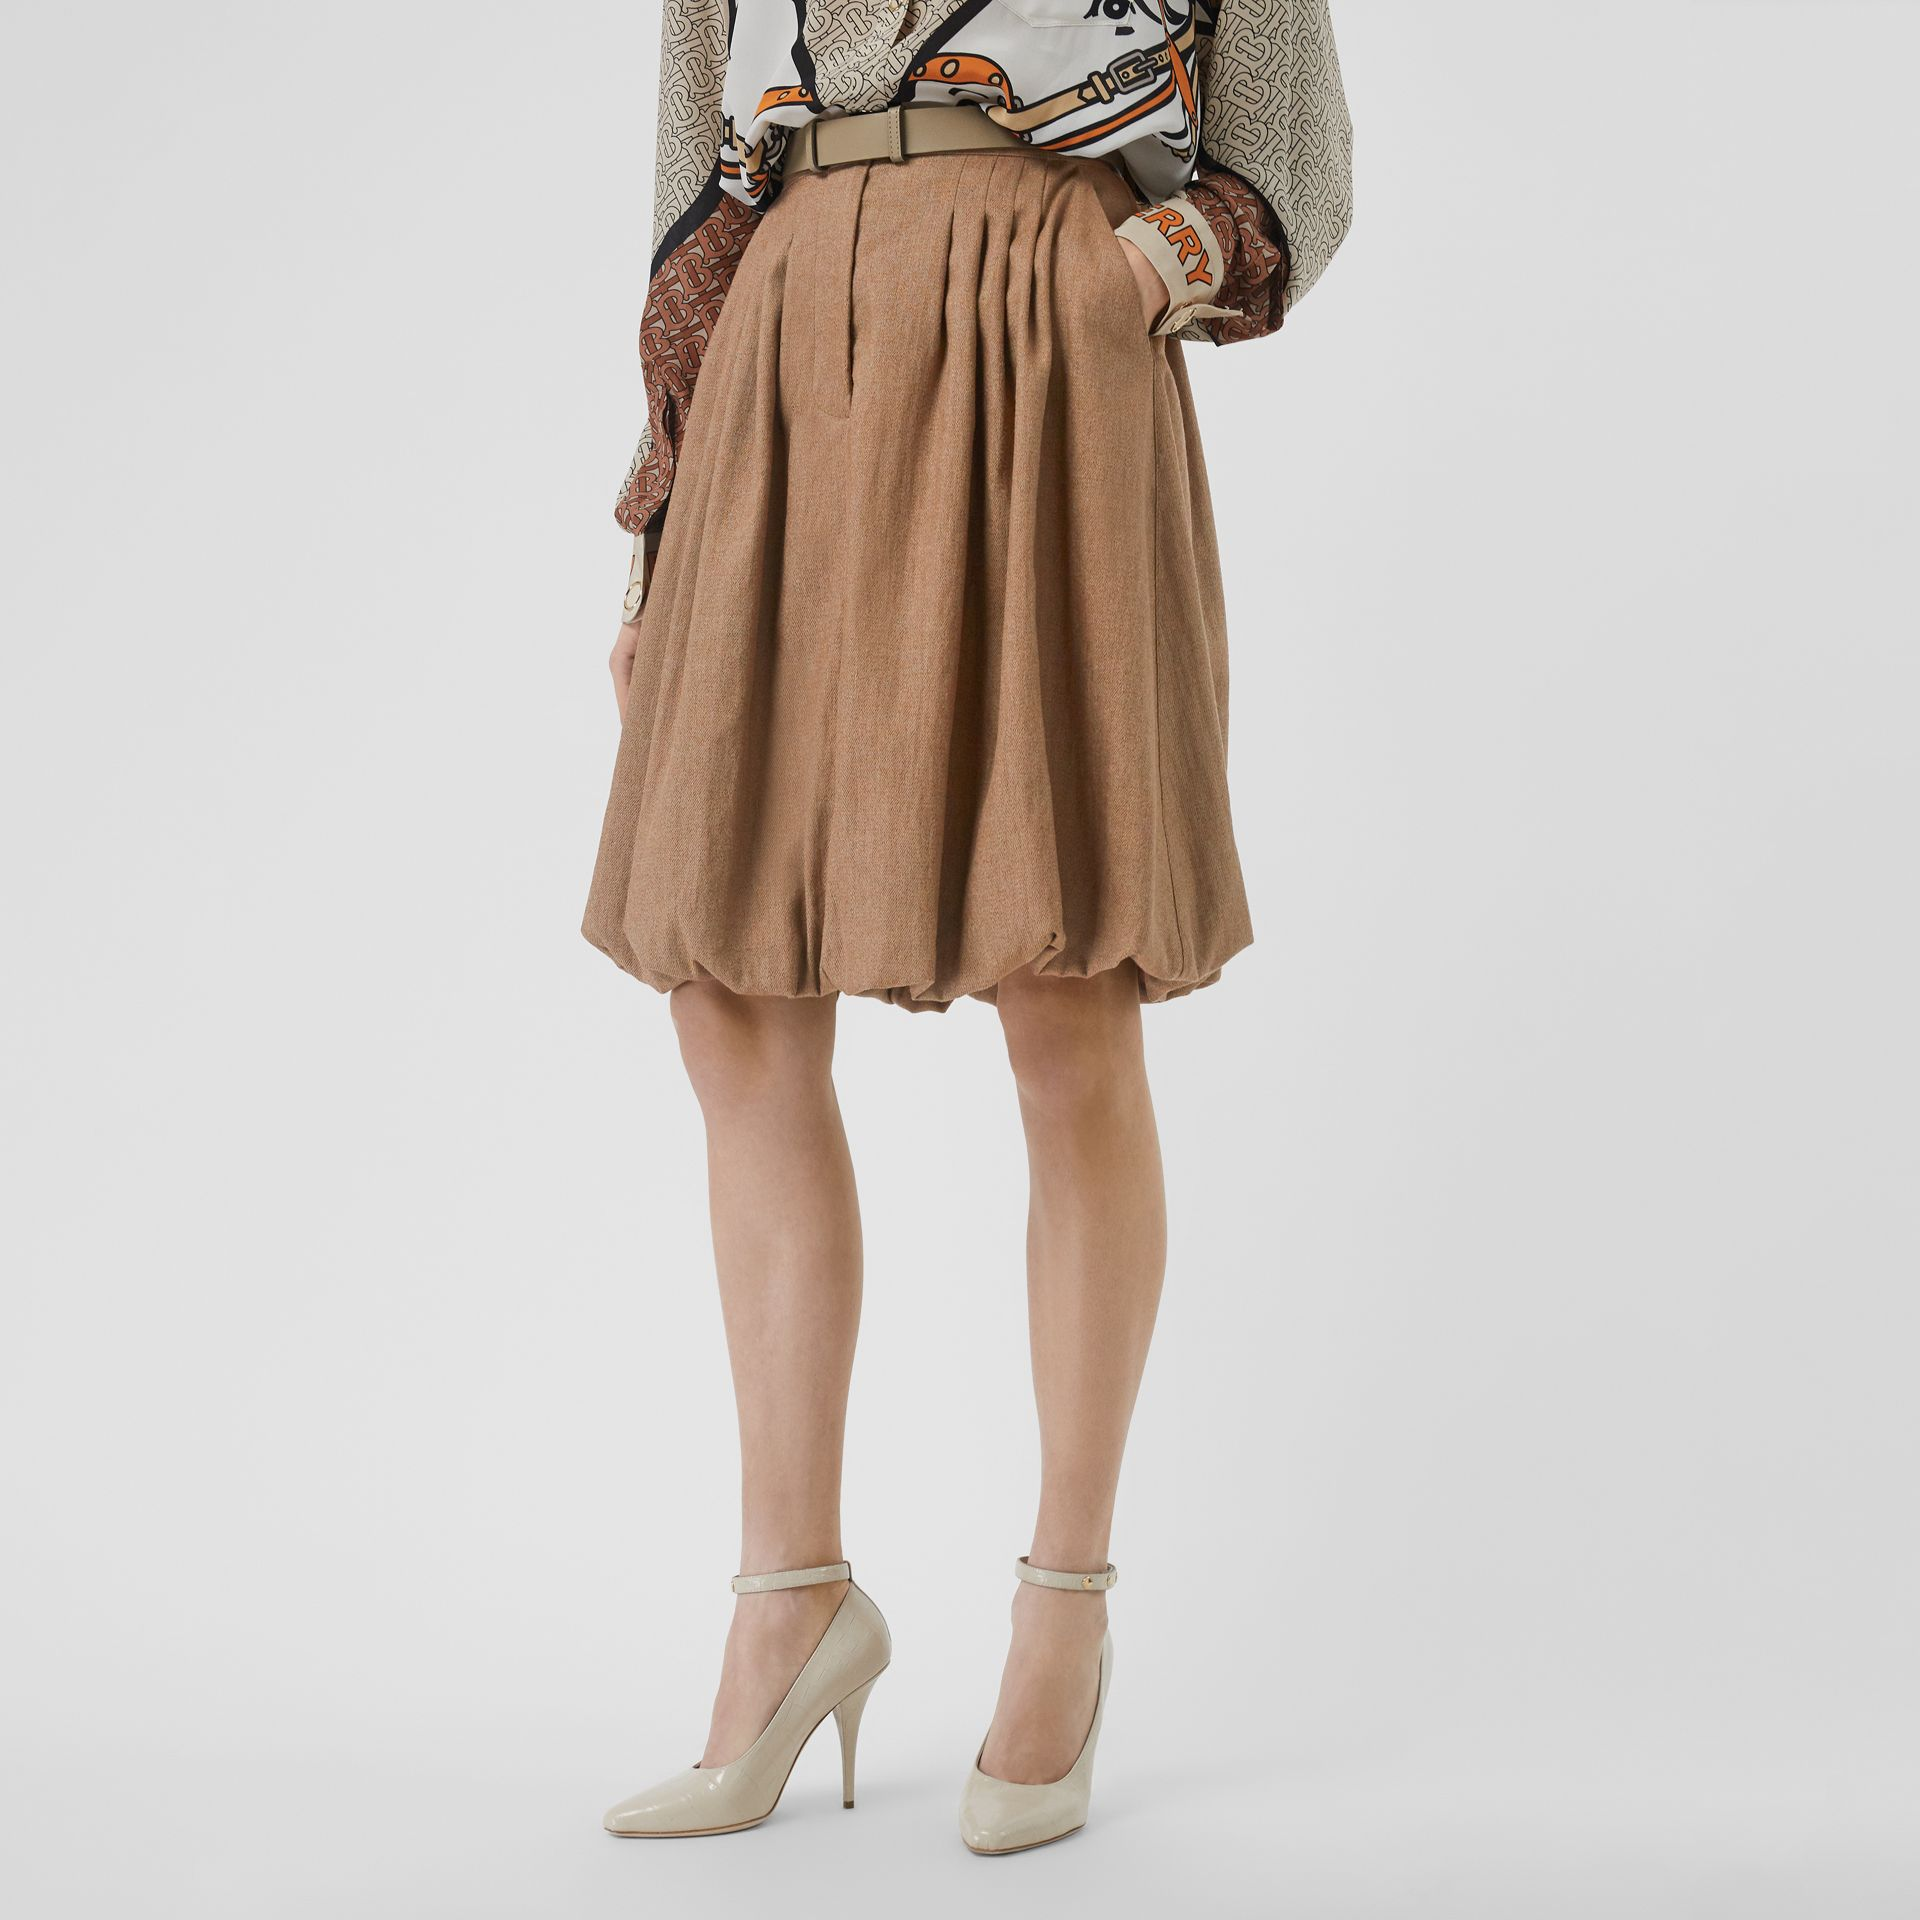 Linen Blend Bubble Hem Skirt in Driftwood - Women | Burberry - gallery image 4